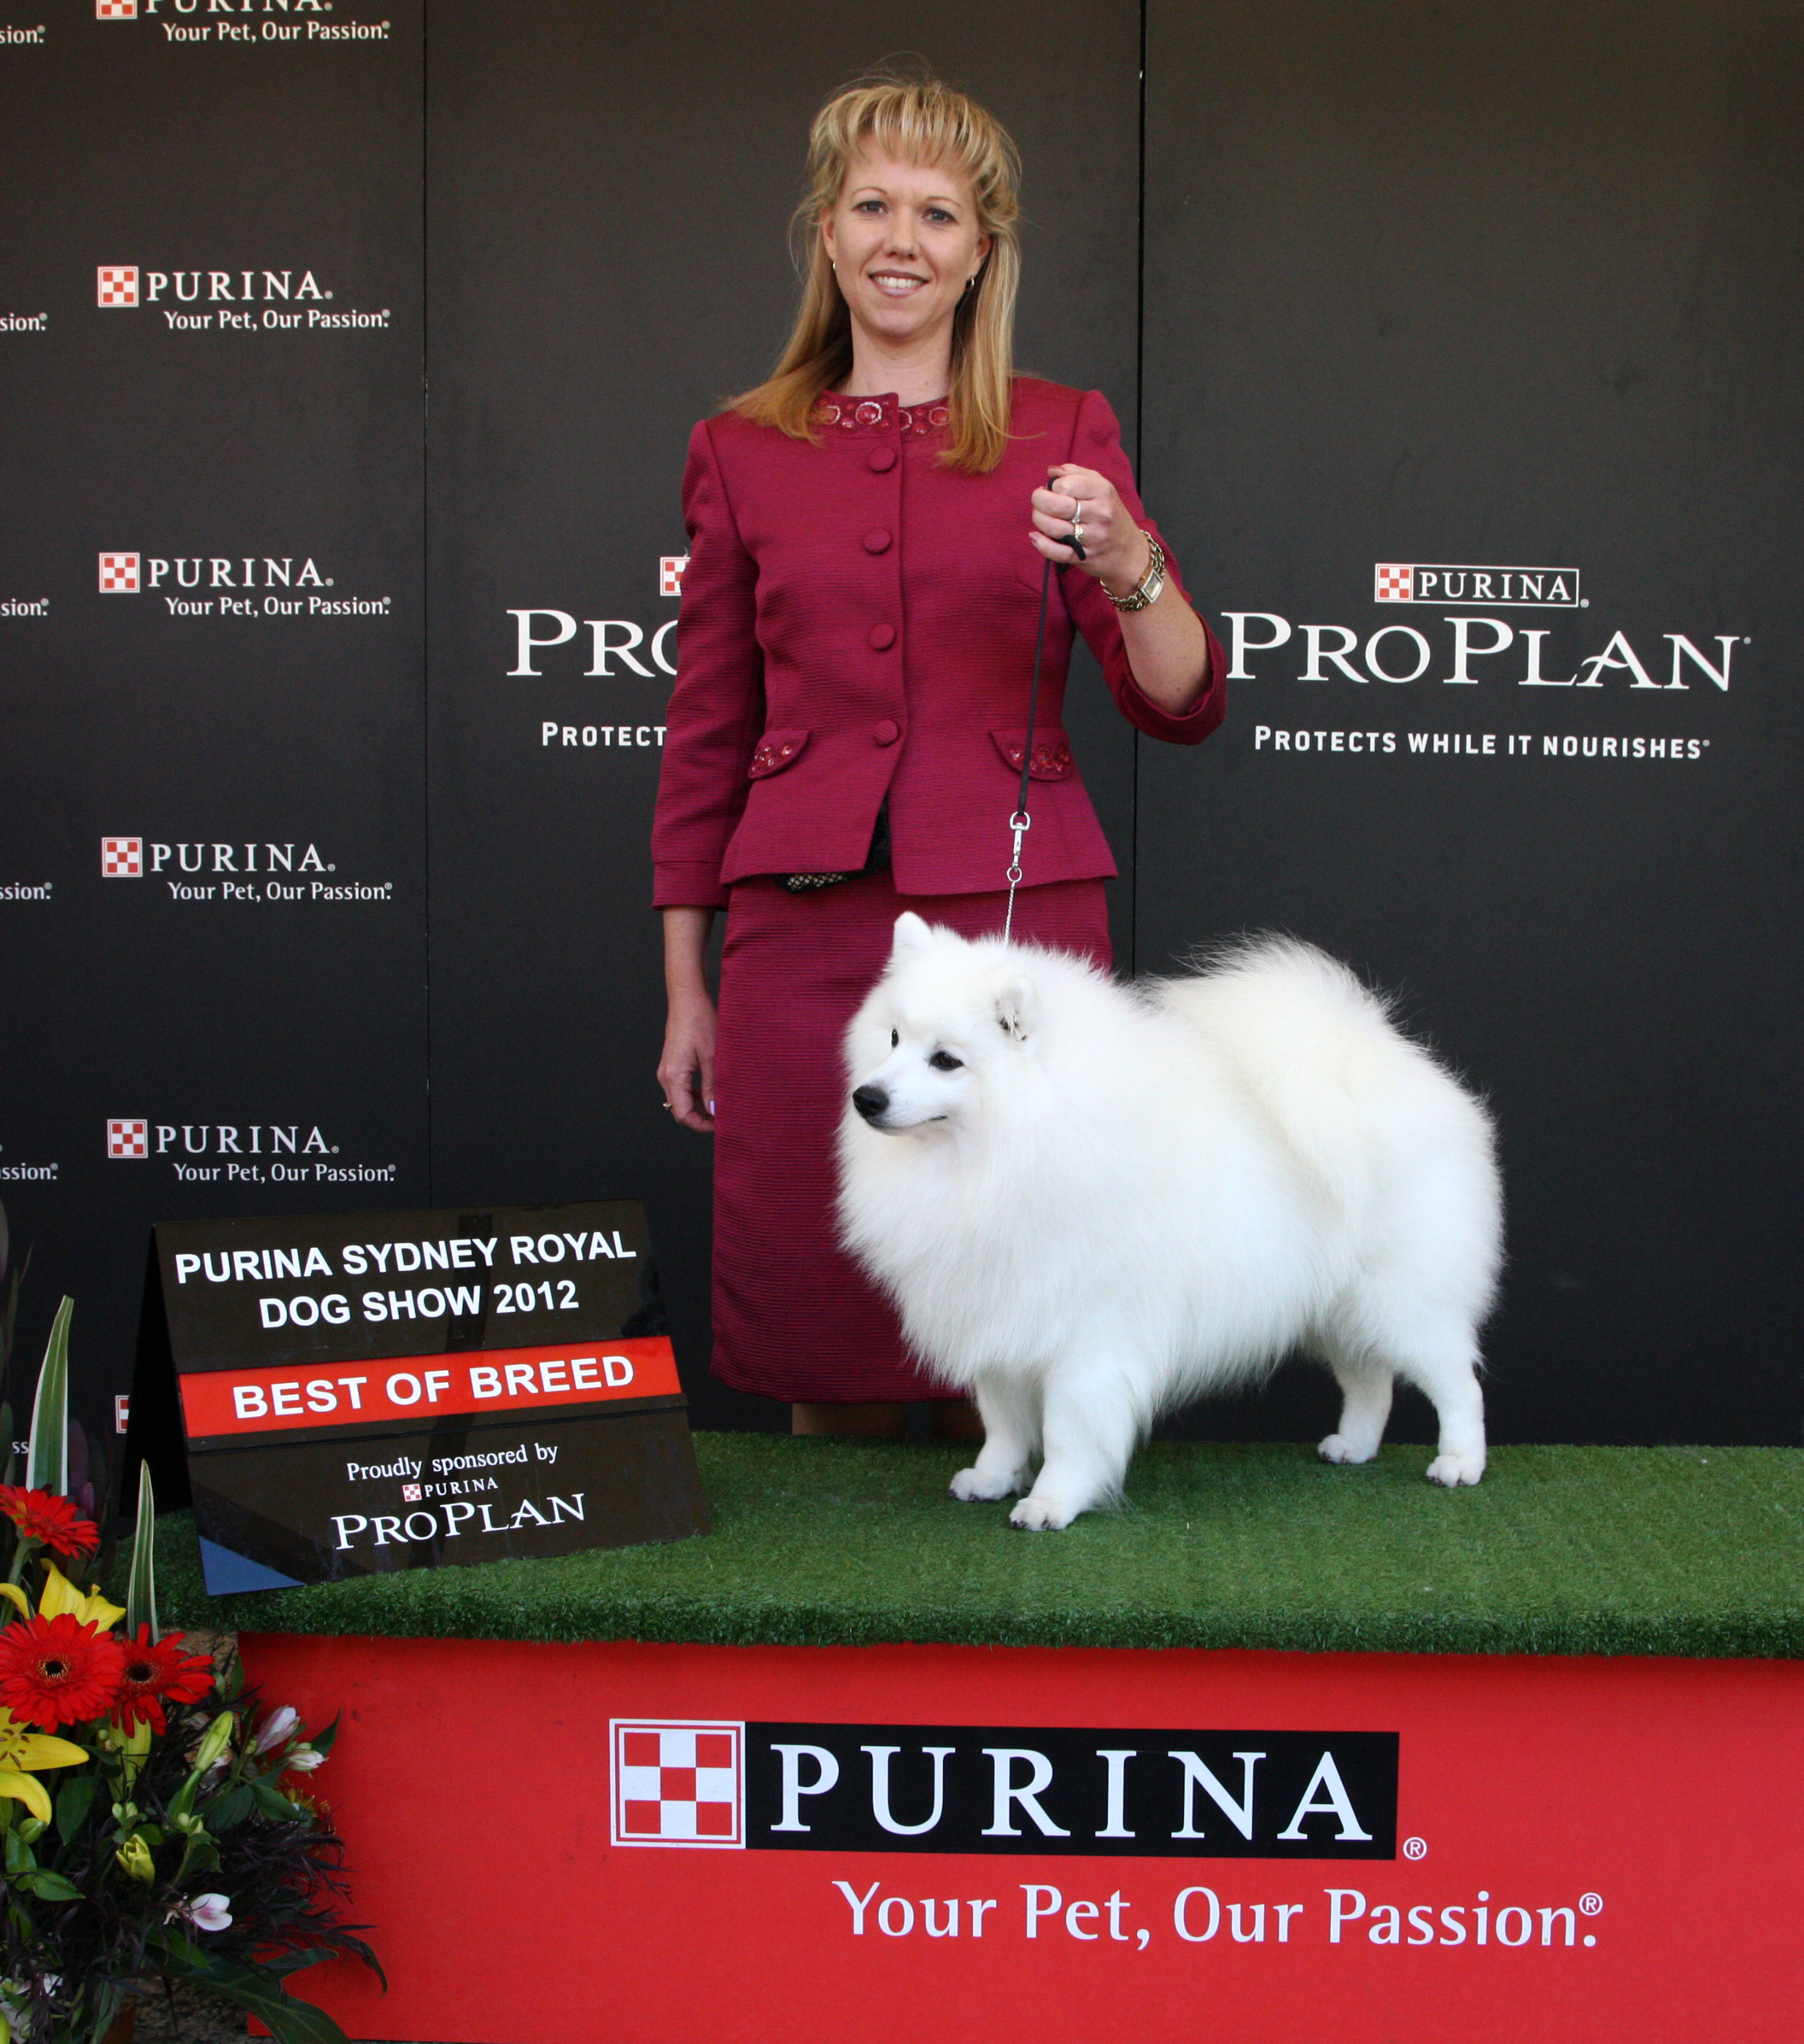 Da-Vinci-BOB-Syd-Royal-Showing-Your-Japanese-Spitz